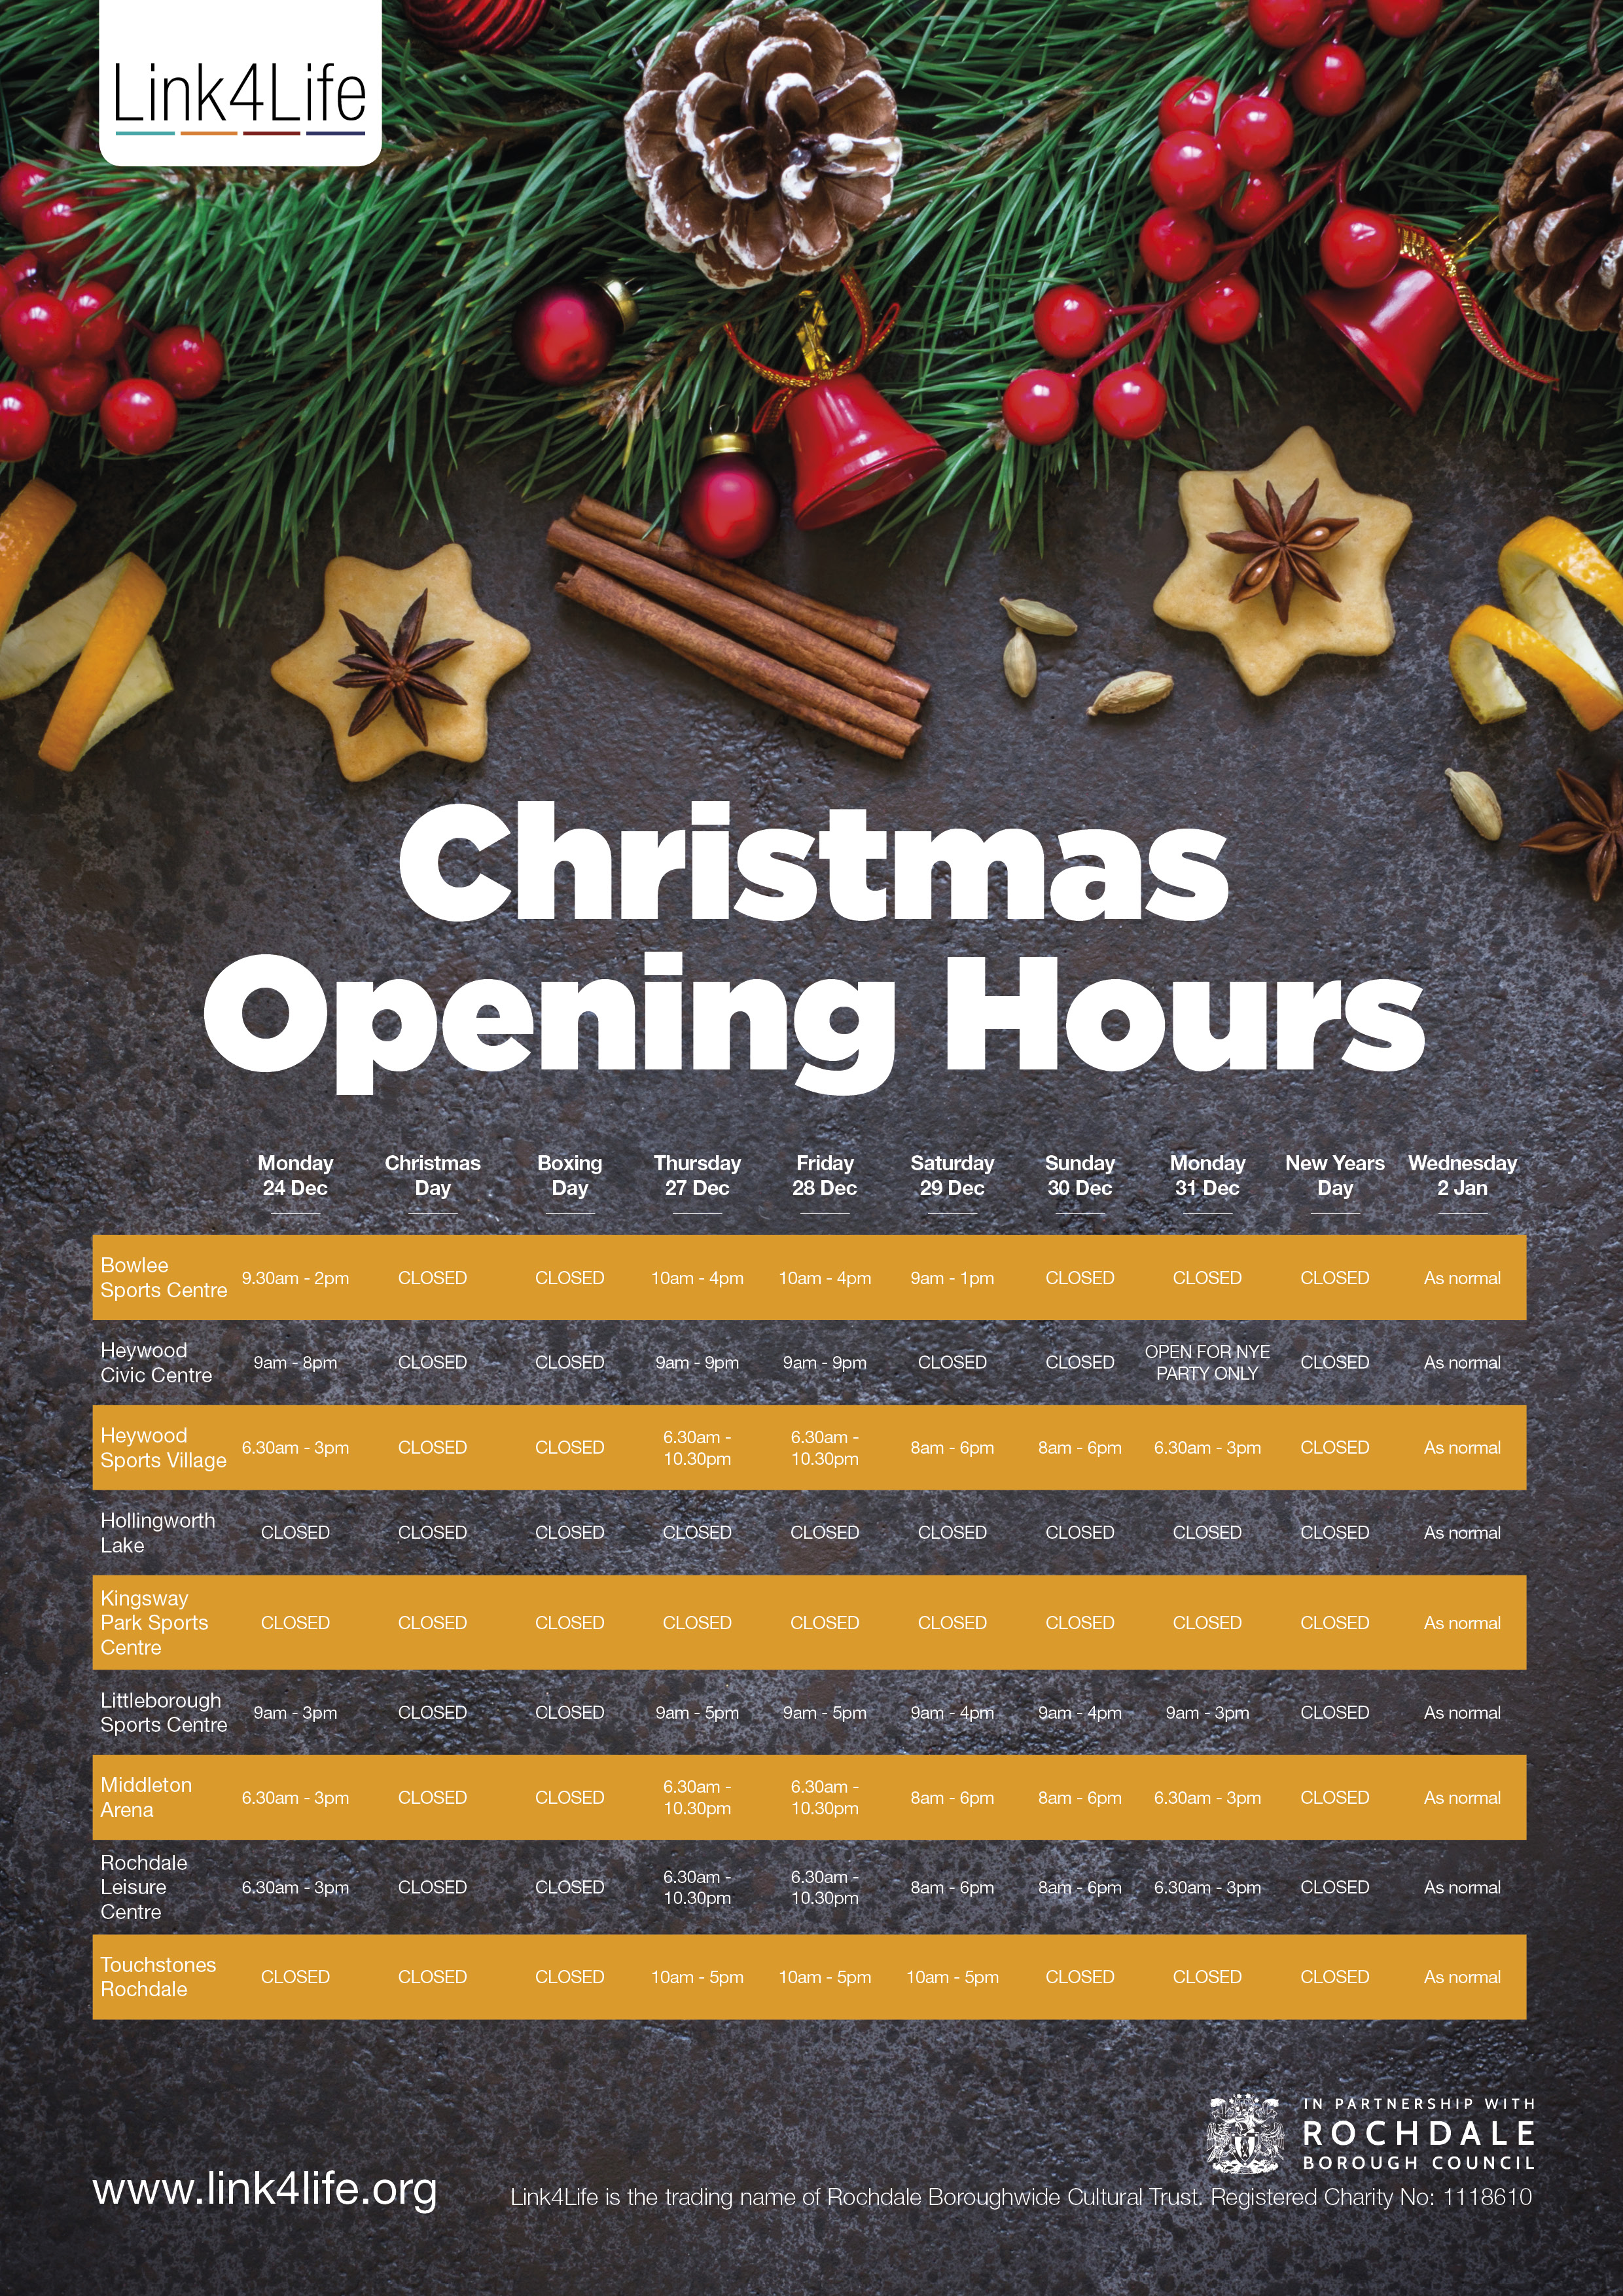 89608-Christmas-Opening-Hours-A4-Poster-FINAL